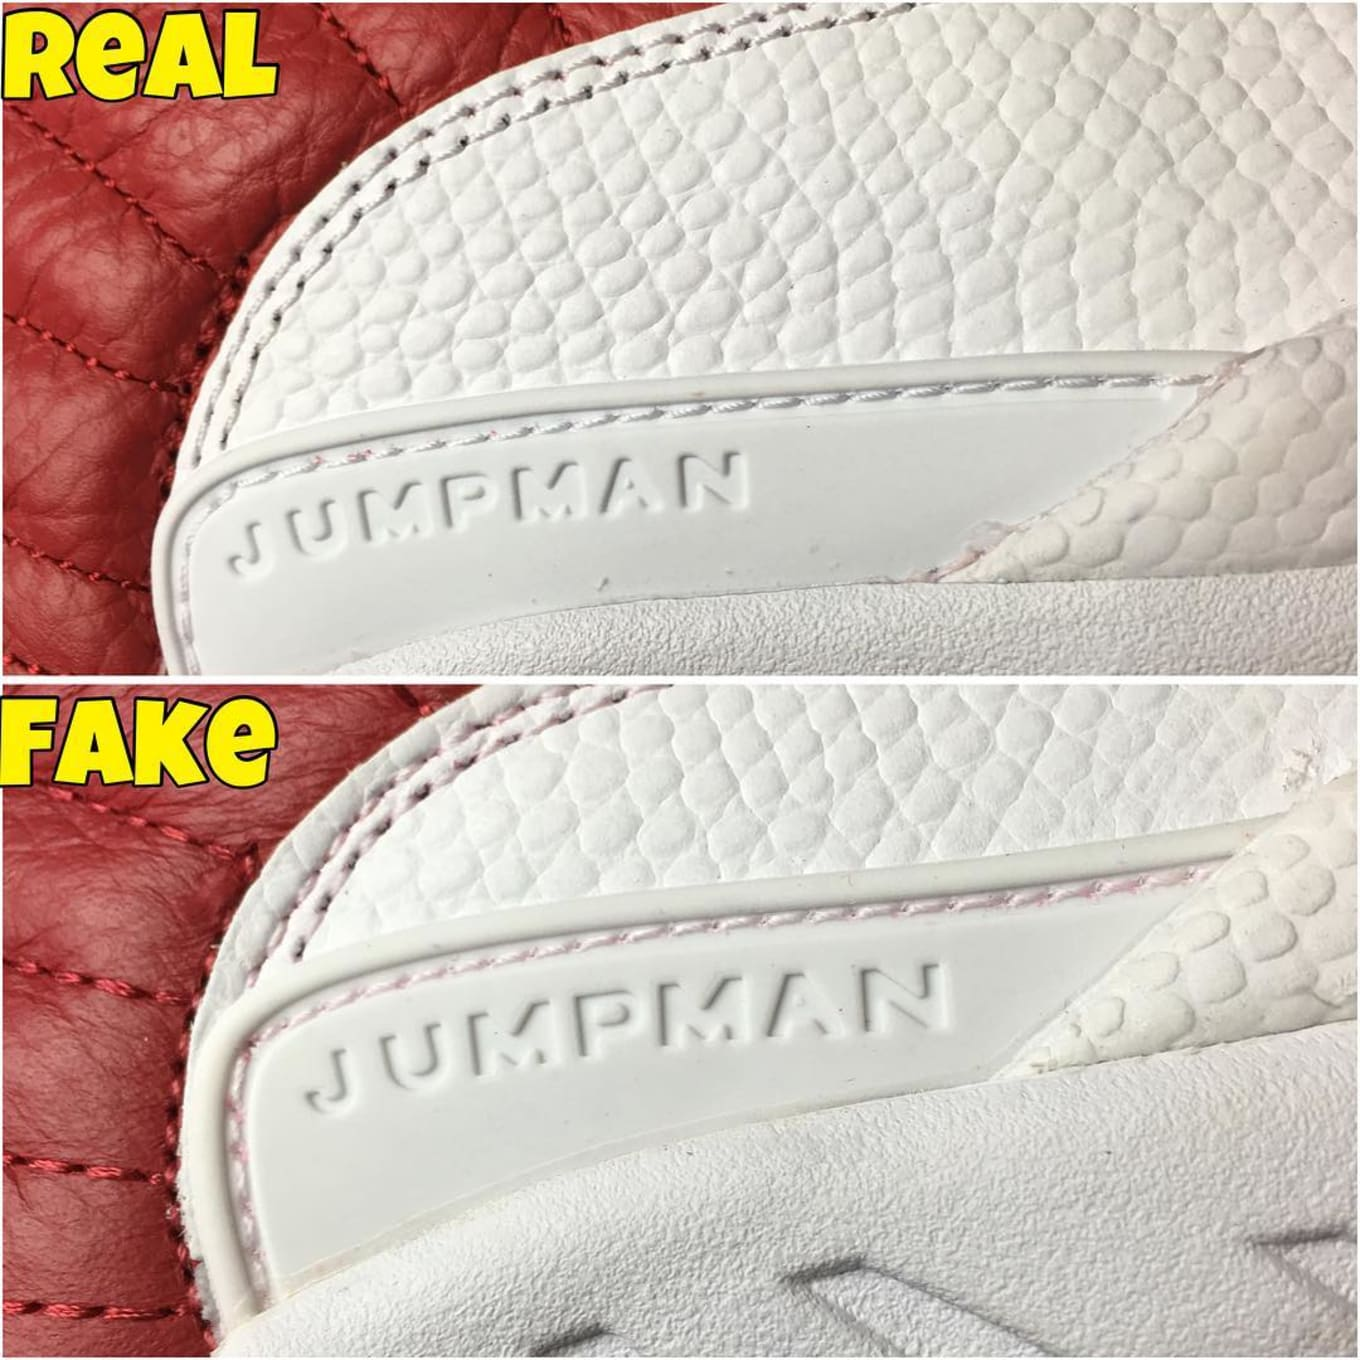 Air Jordan XII 12 Gym Red Alternate Real Fake Legit Check (3) 40f5baaab